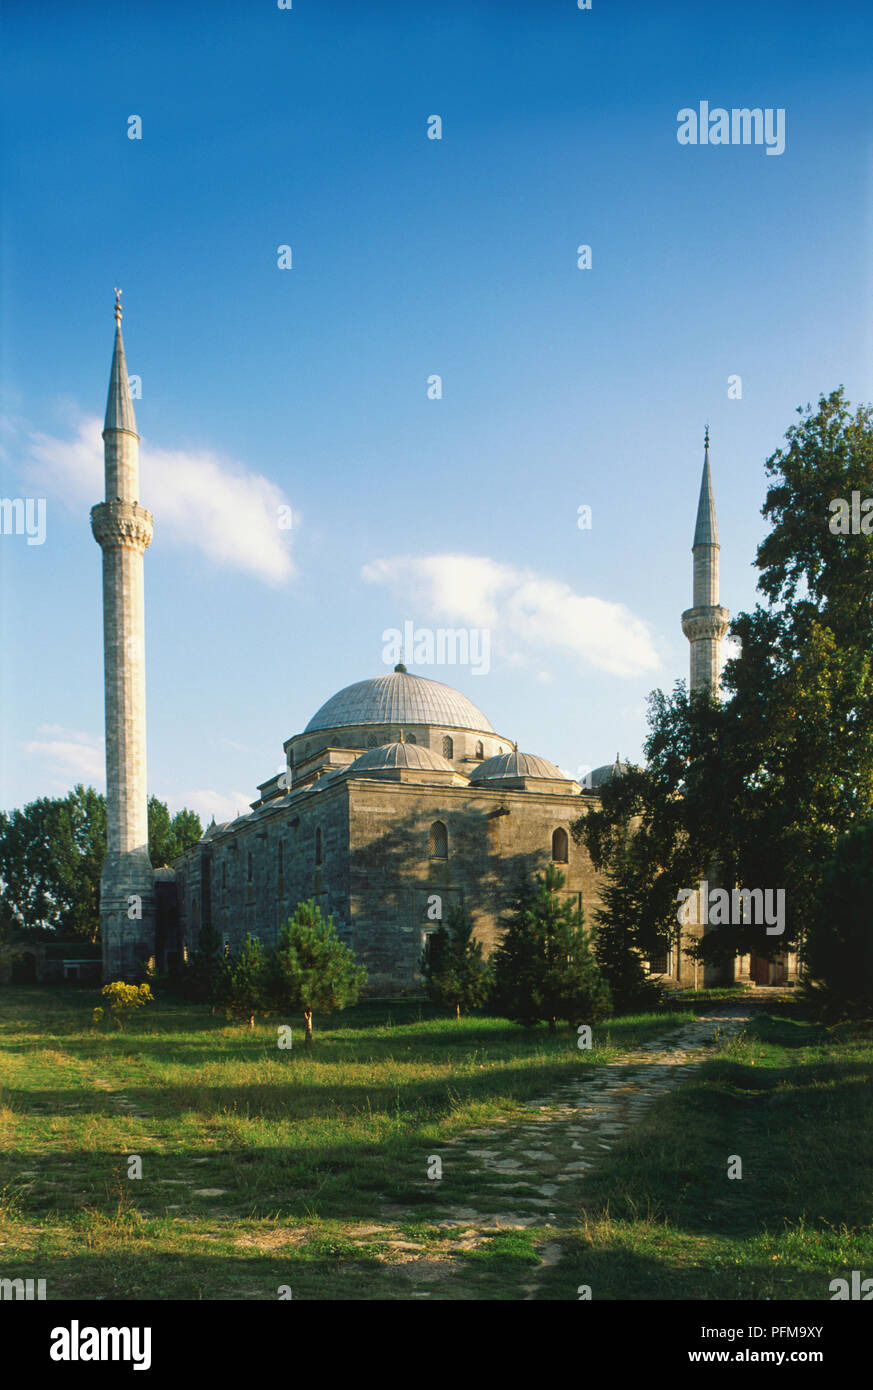 Asia, Turkey, Edirne, exterior, domes and minarets of the 15th-century Beyazit II Mosque, grass and trees in foreground. - Stock Image